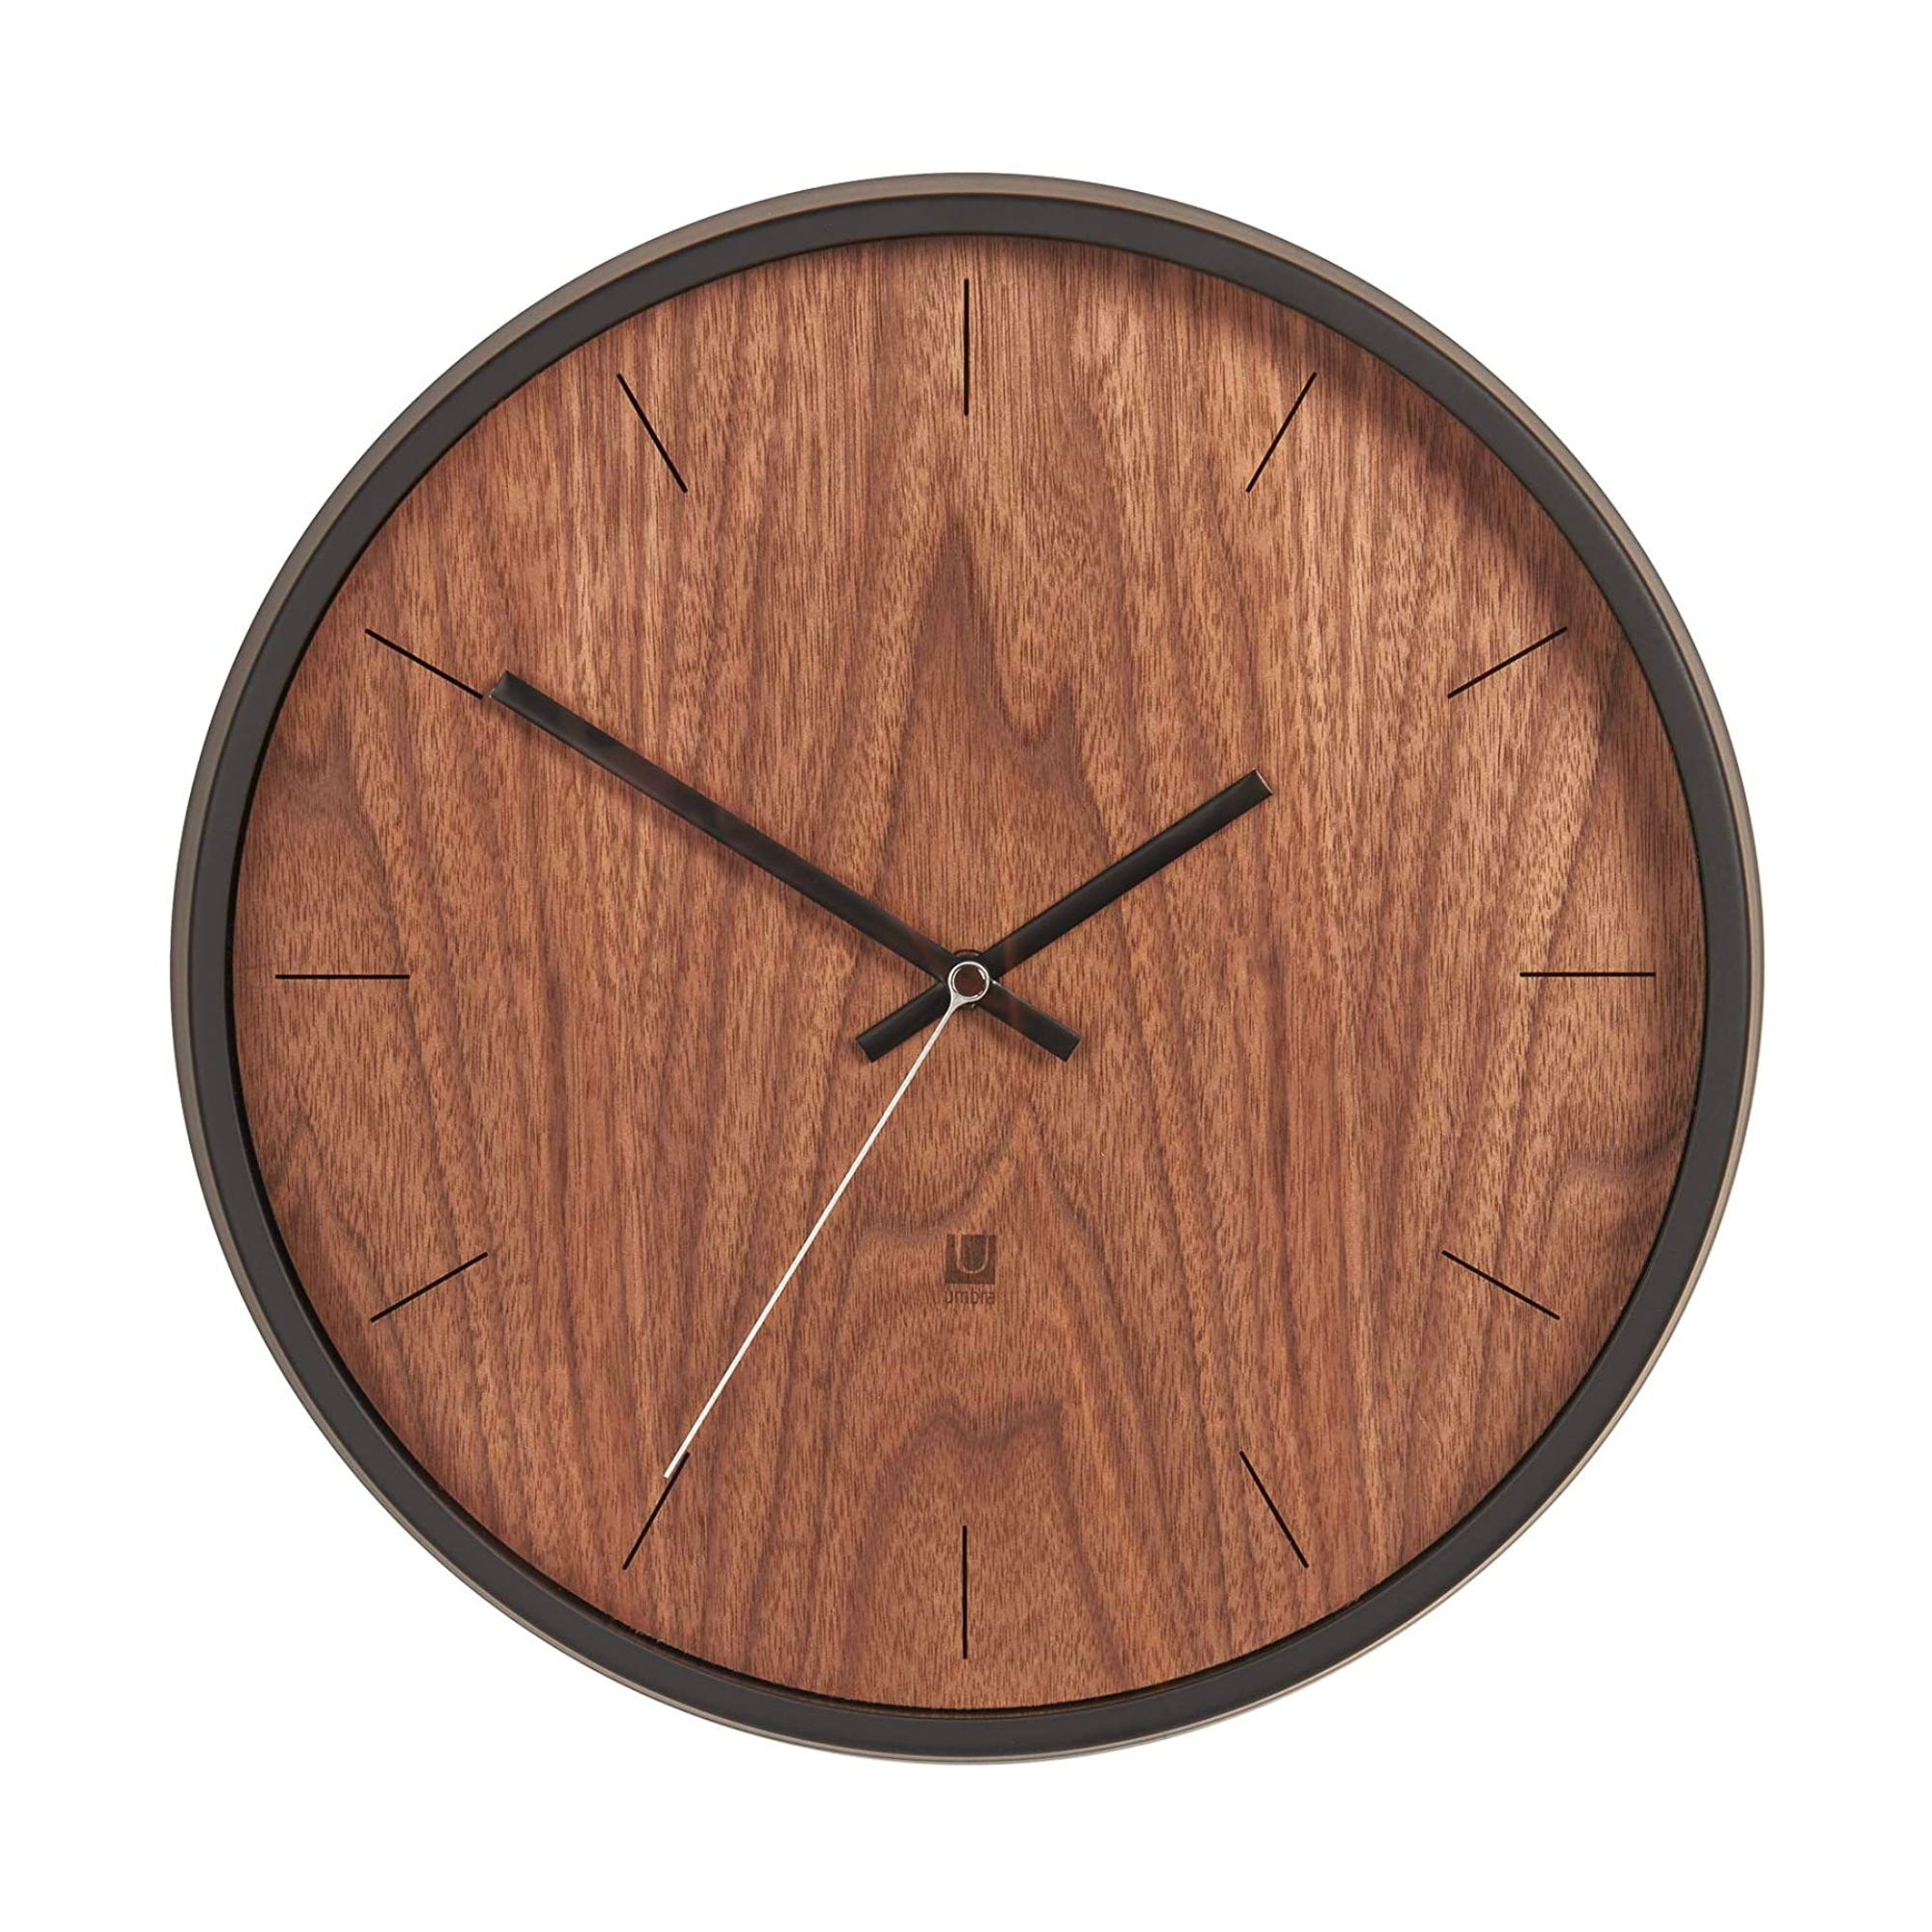 Umbra Madera wall clock, black - walnut